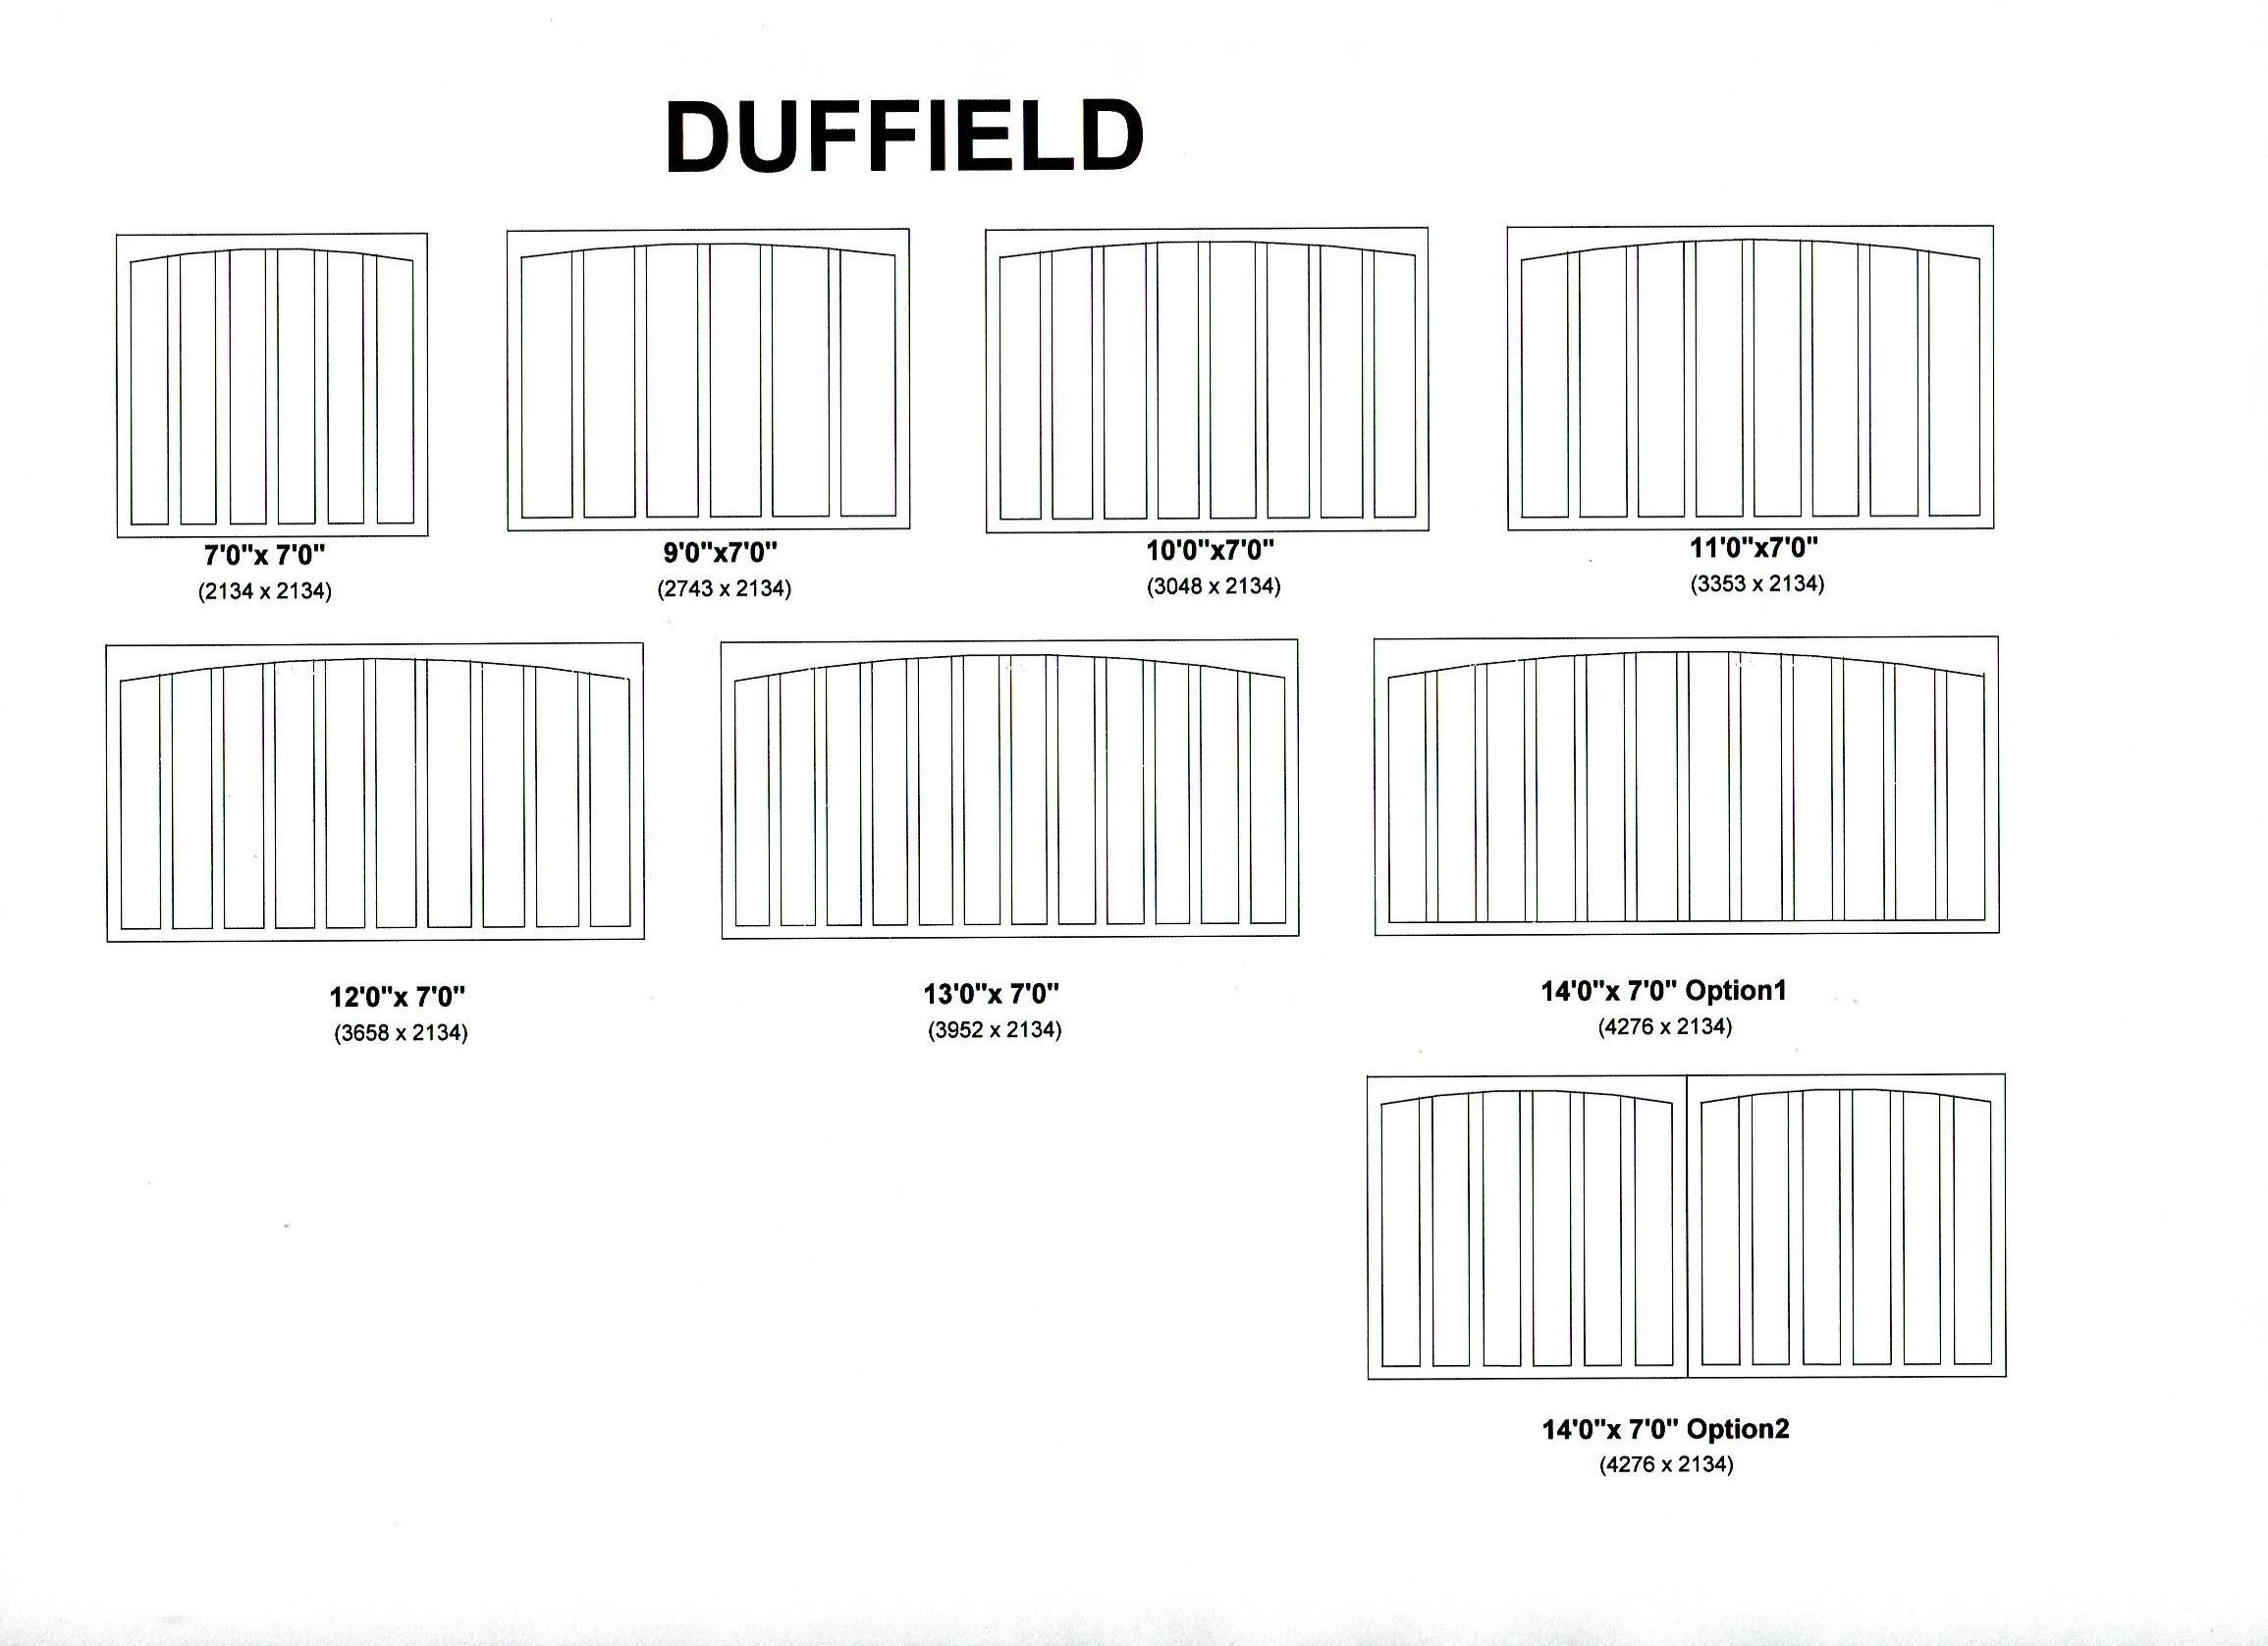 Cedar Door Duffield design options